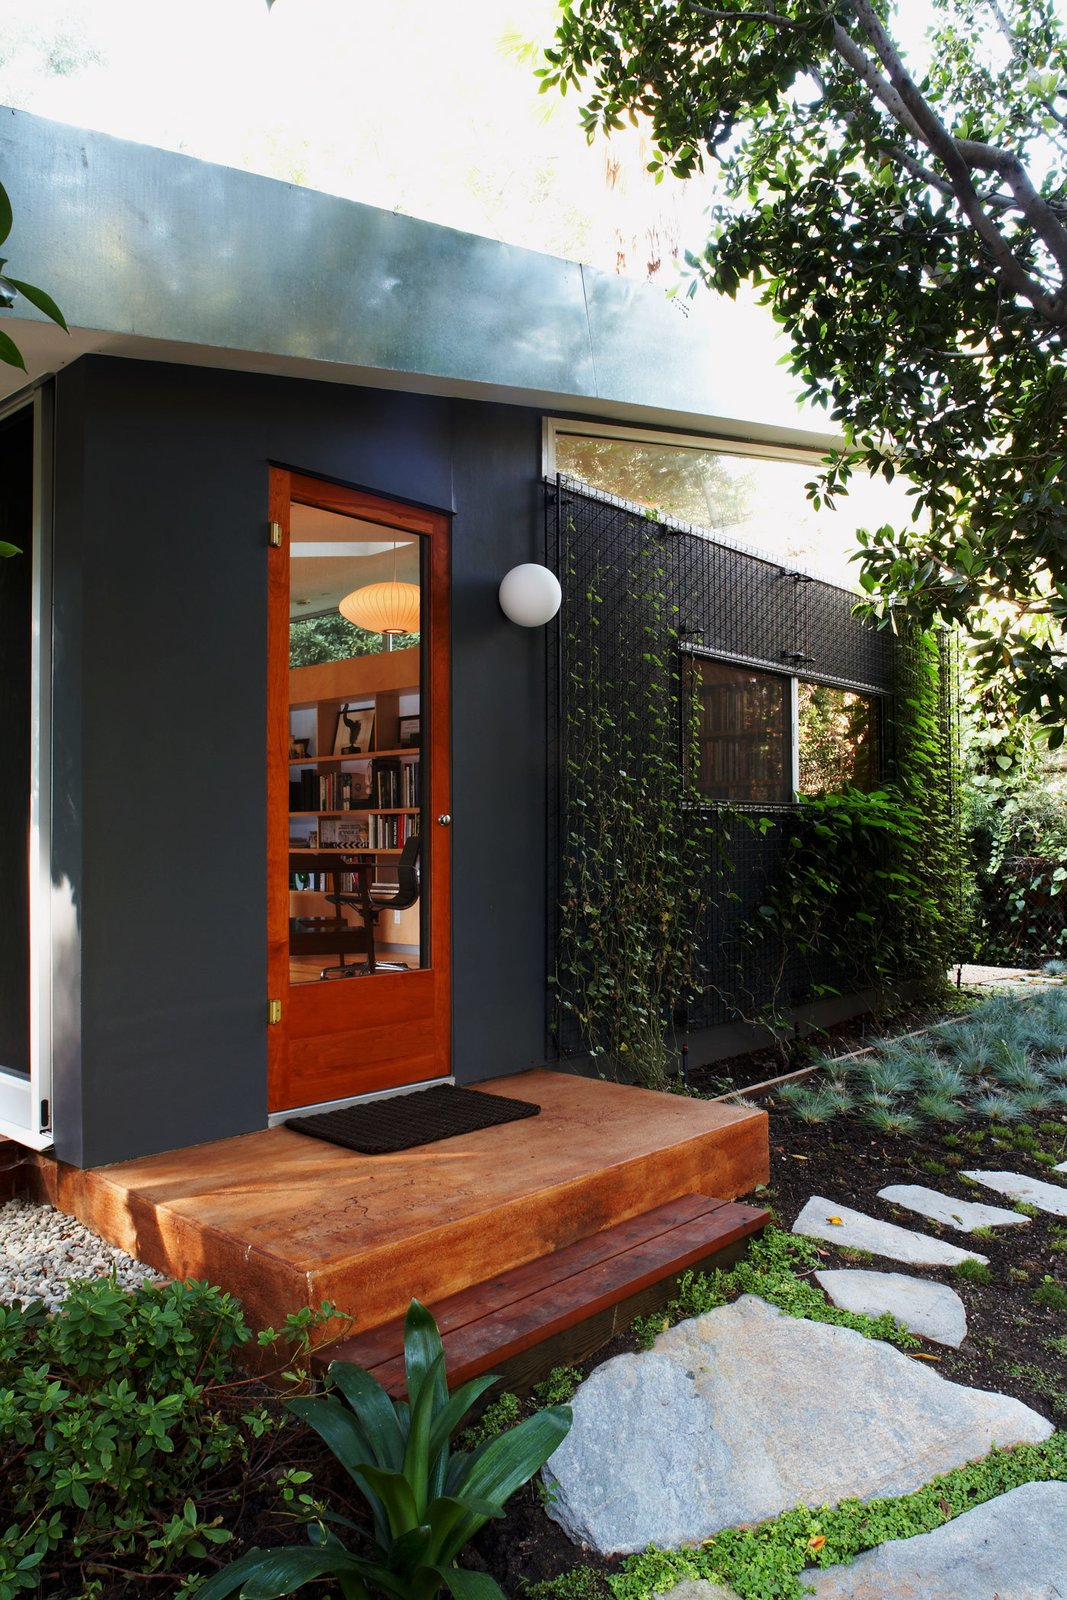 #LushHouse #modern #midcentury #hillside #seclusion #lighting #exterior #outside #landscape #plants #trees #pathway #door #wood #step #windows #detail #BeverlyHills #KingsleyStephensonArchitecture  Lush House